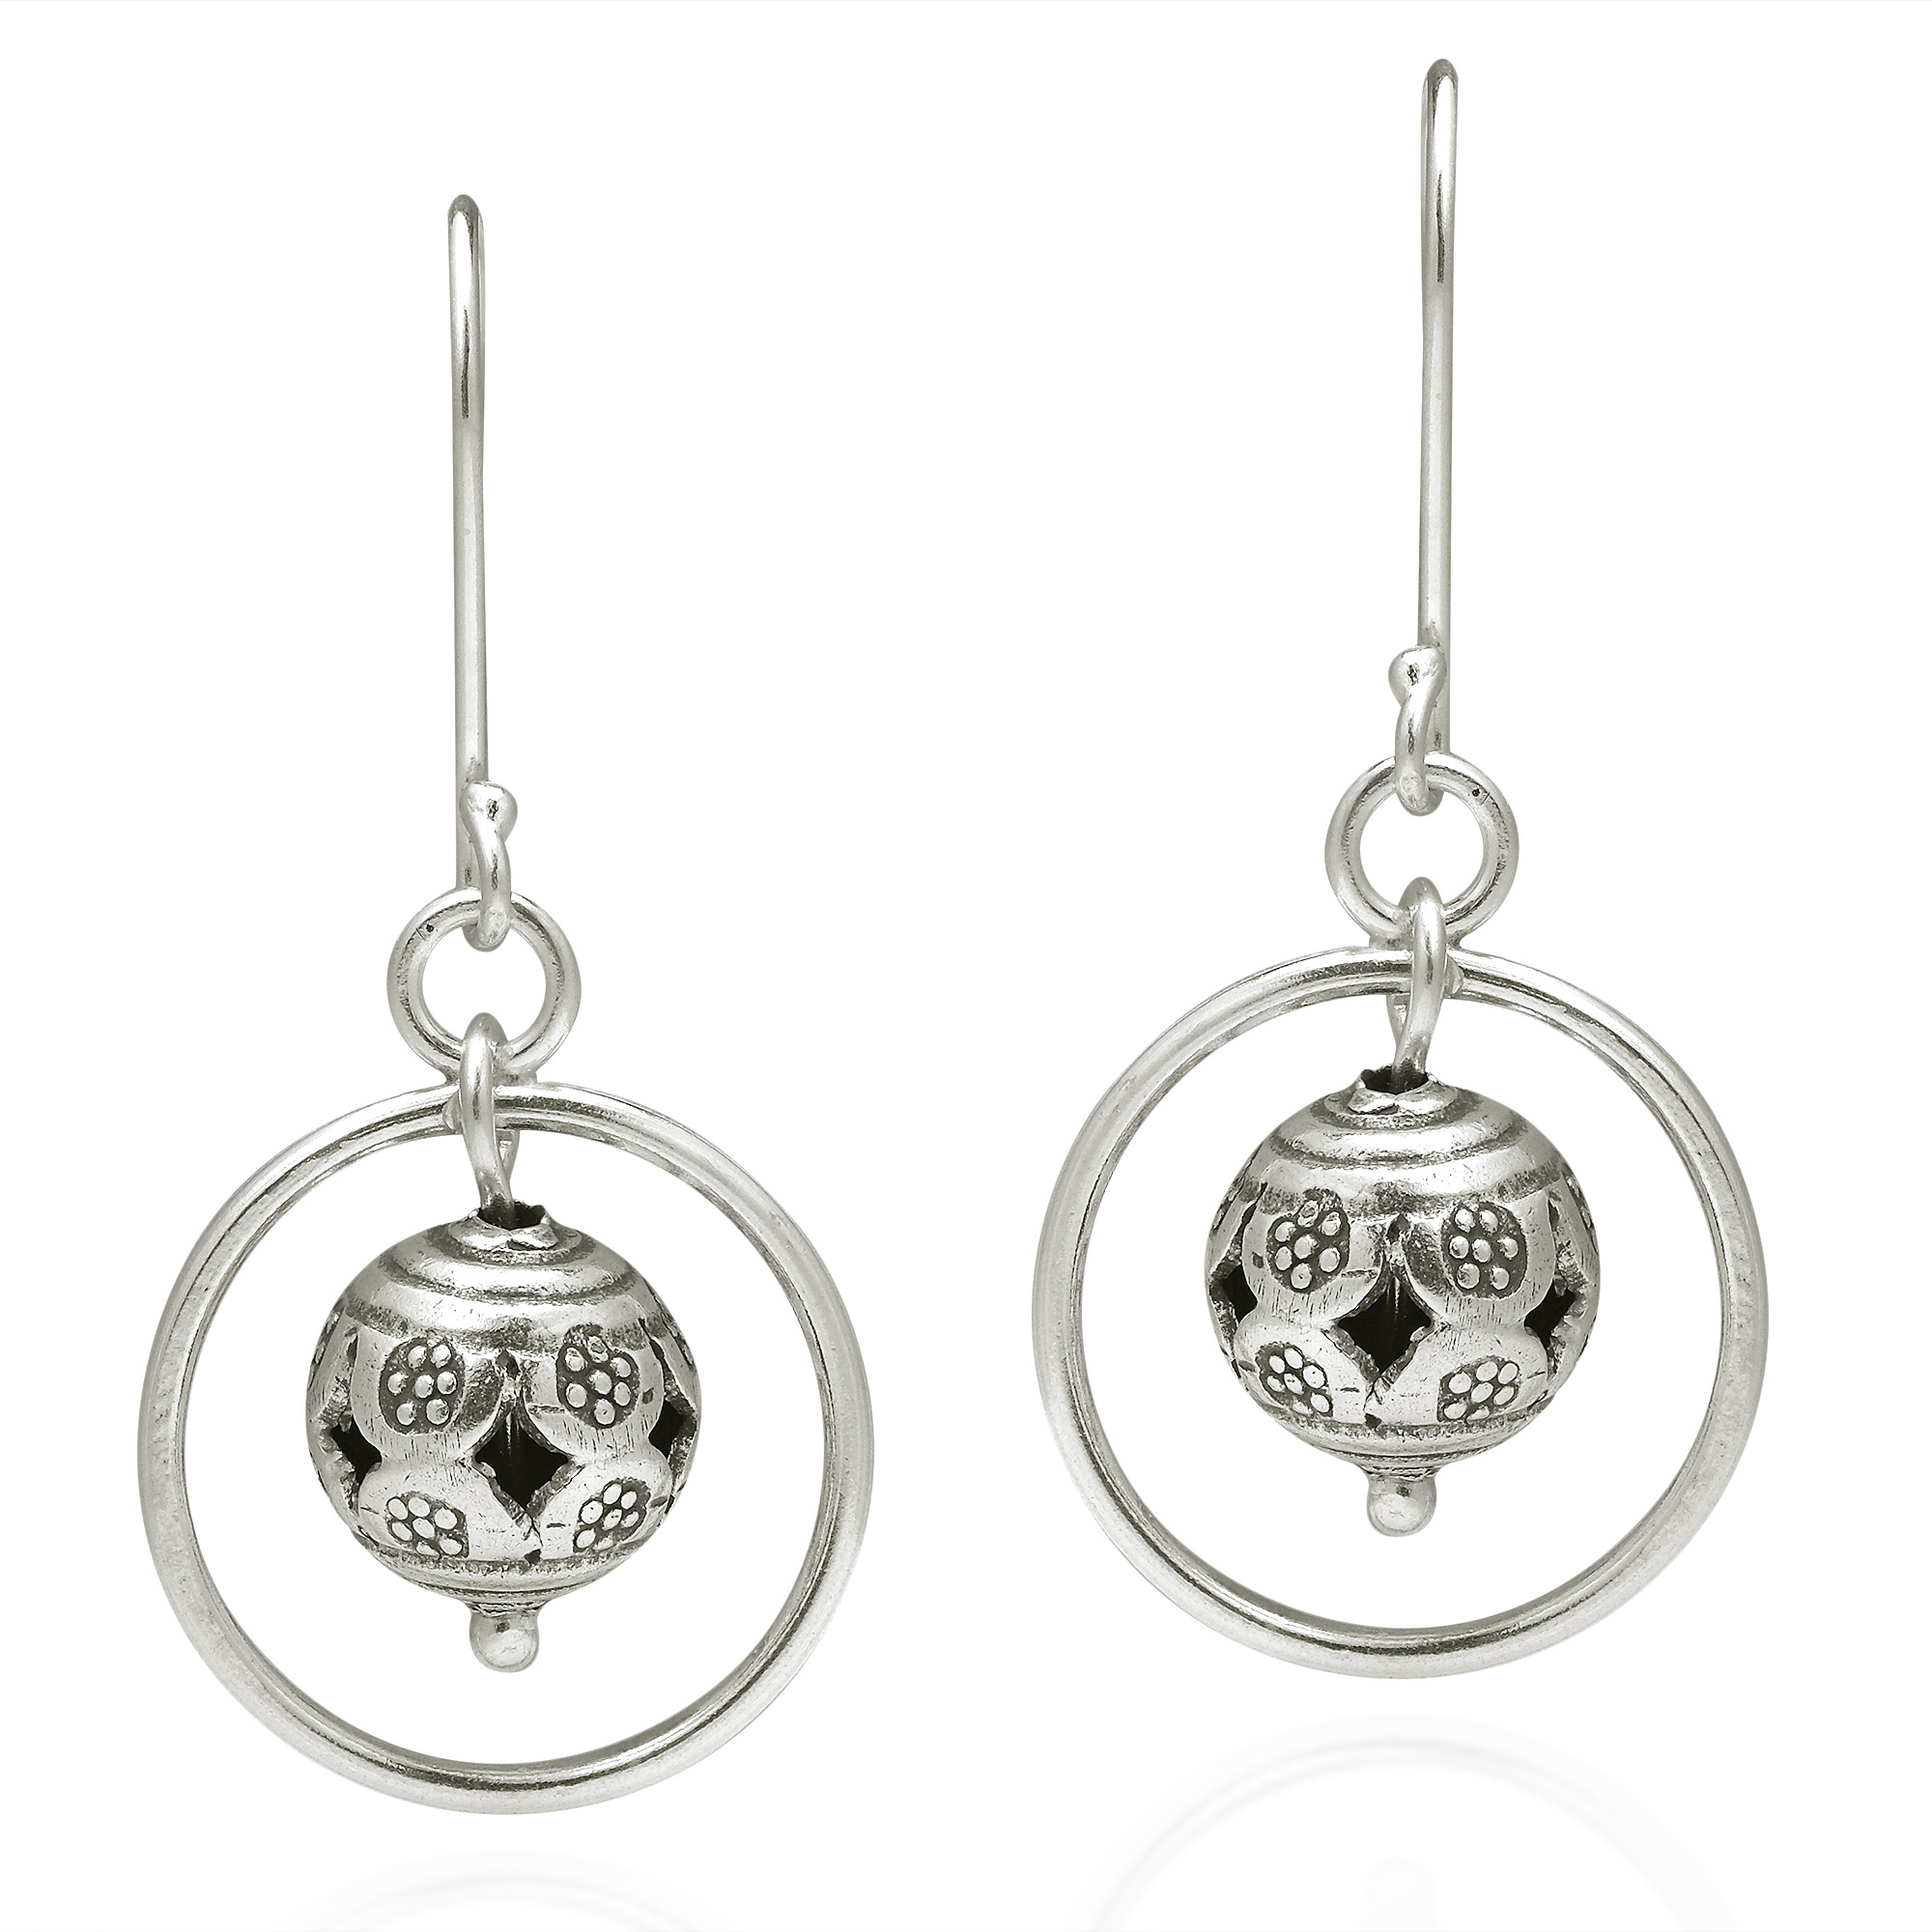 A Round Ball With Tribal Etchings Hangs In Artistic Beauty, Surrounded By  Circles In This Original Earrings By The Yao Hill Tribe The Earrings Were  Crafted